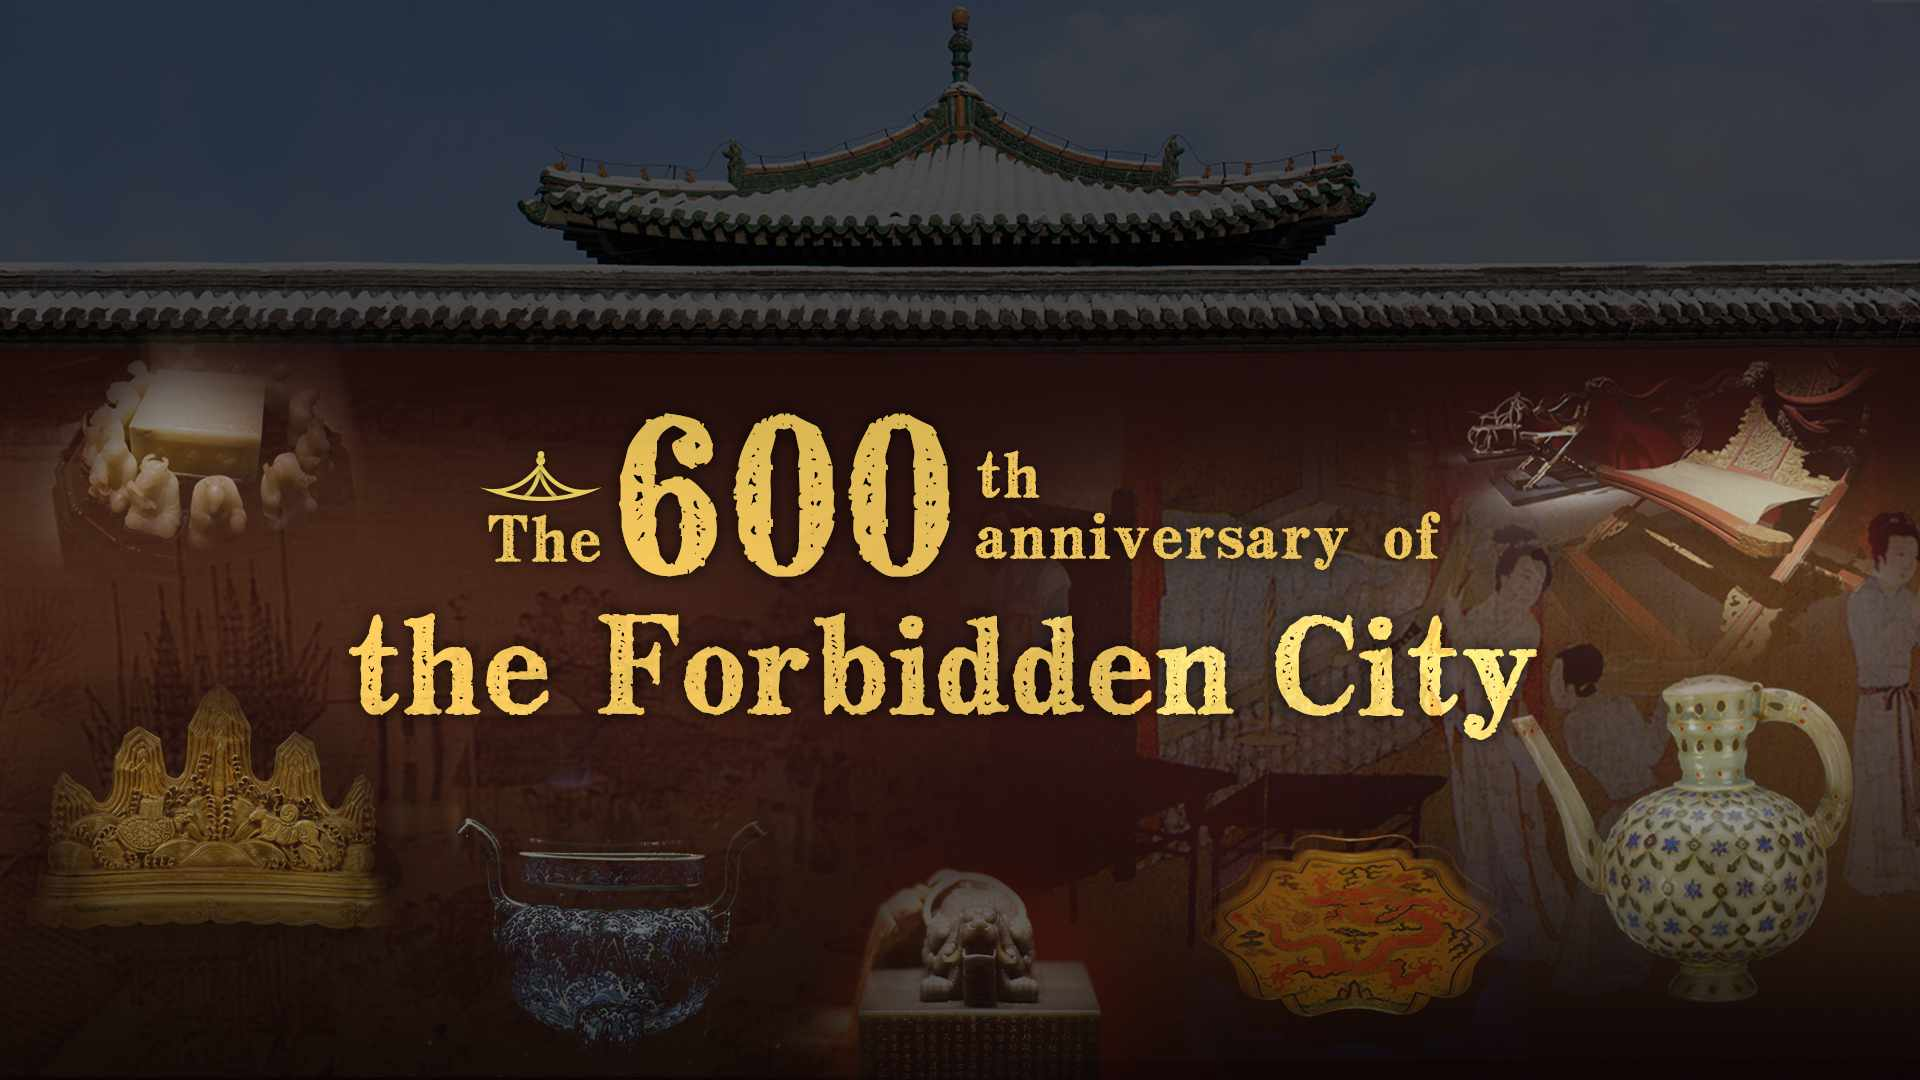 China's Forbidden City to host series of exhibitions to celebrate its 600th anniversary